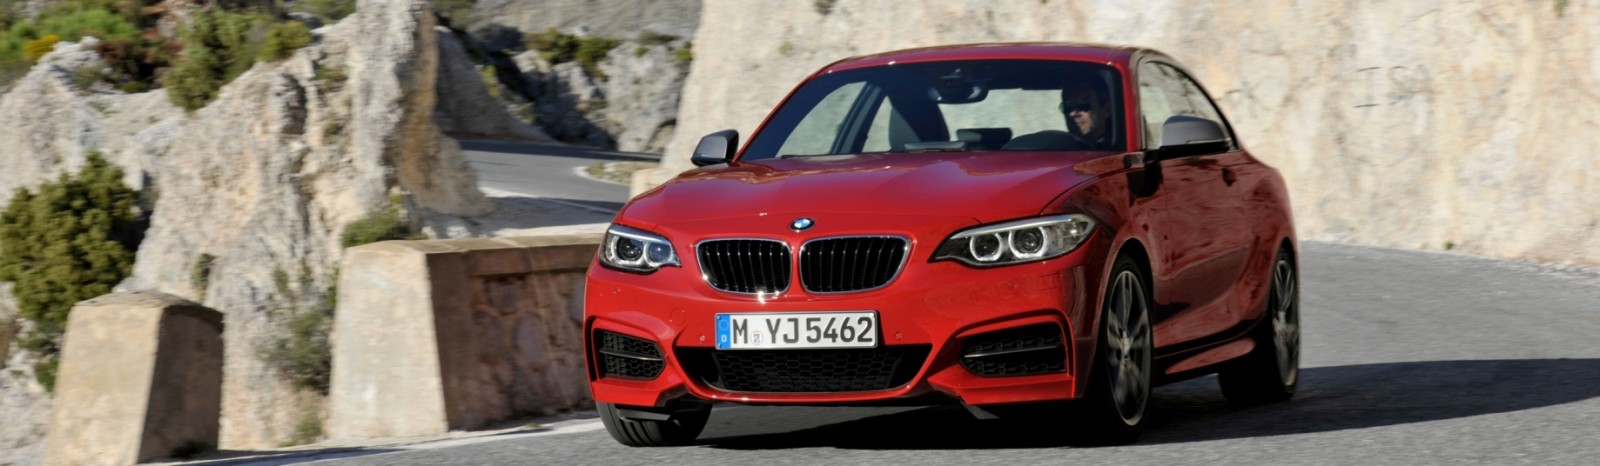 2014 BMW 228i and M235i 53